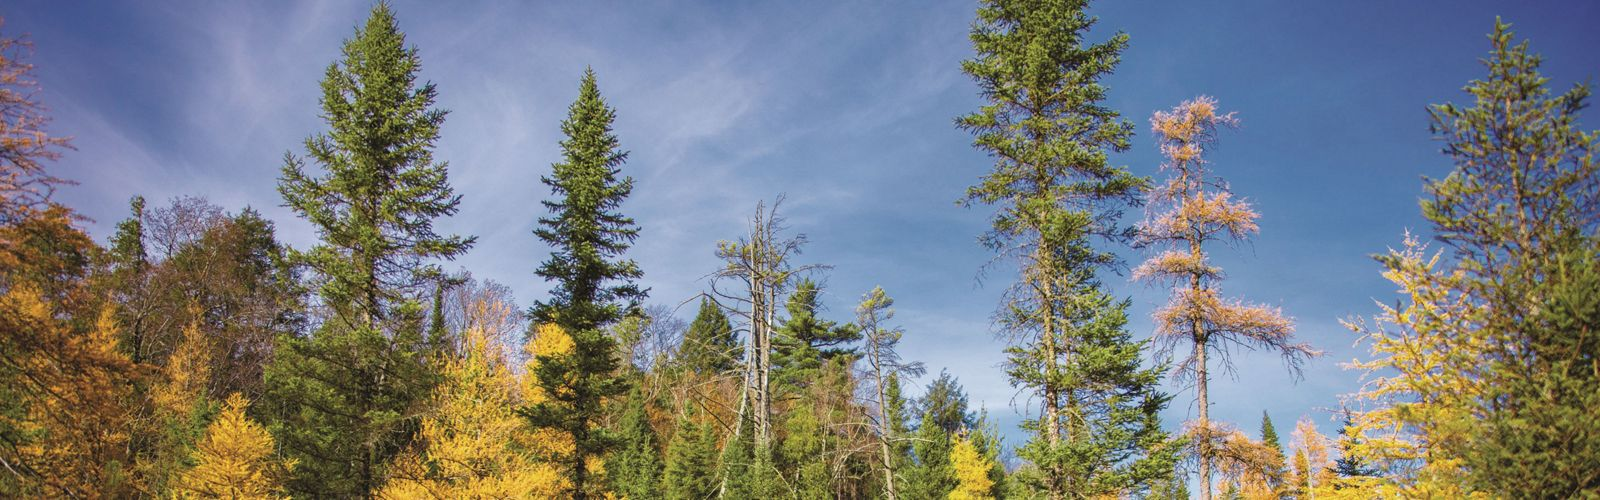 A forest tree line in autumn.